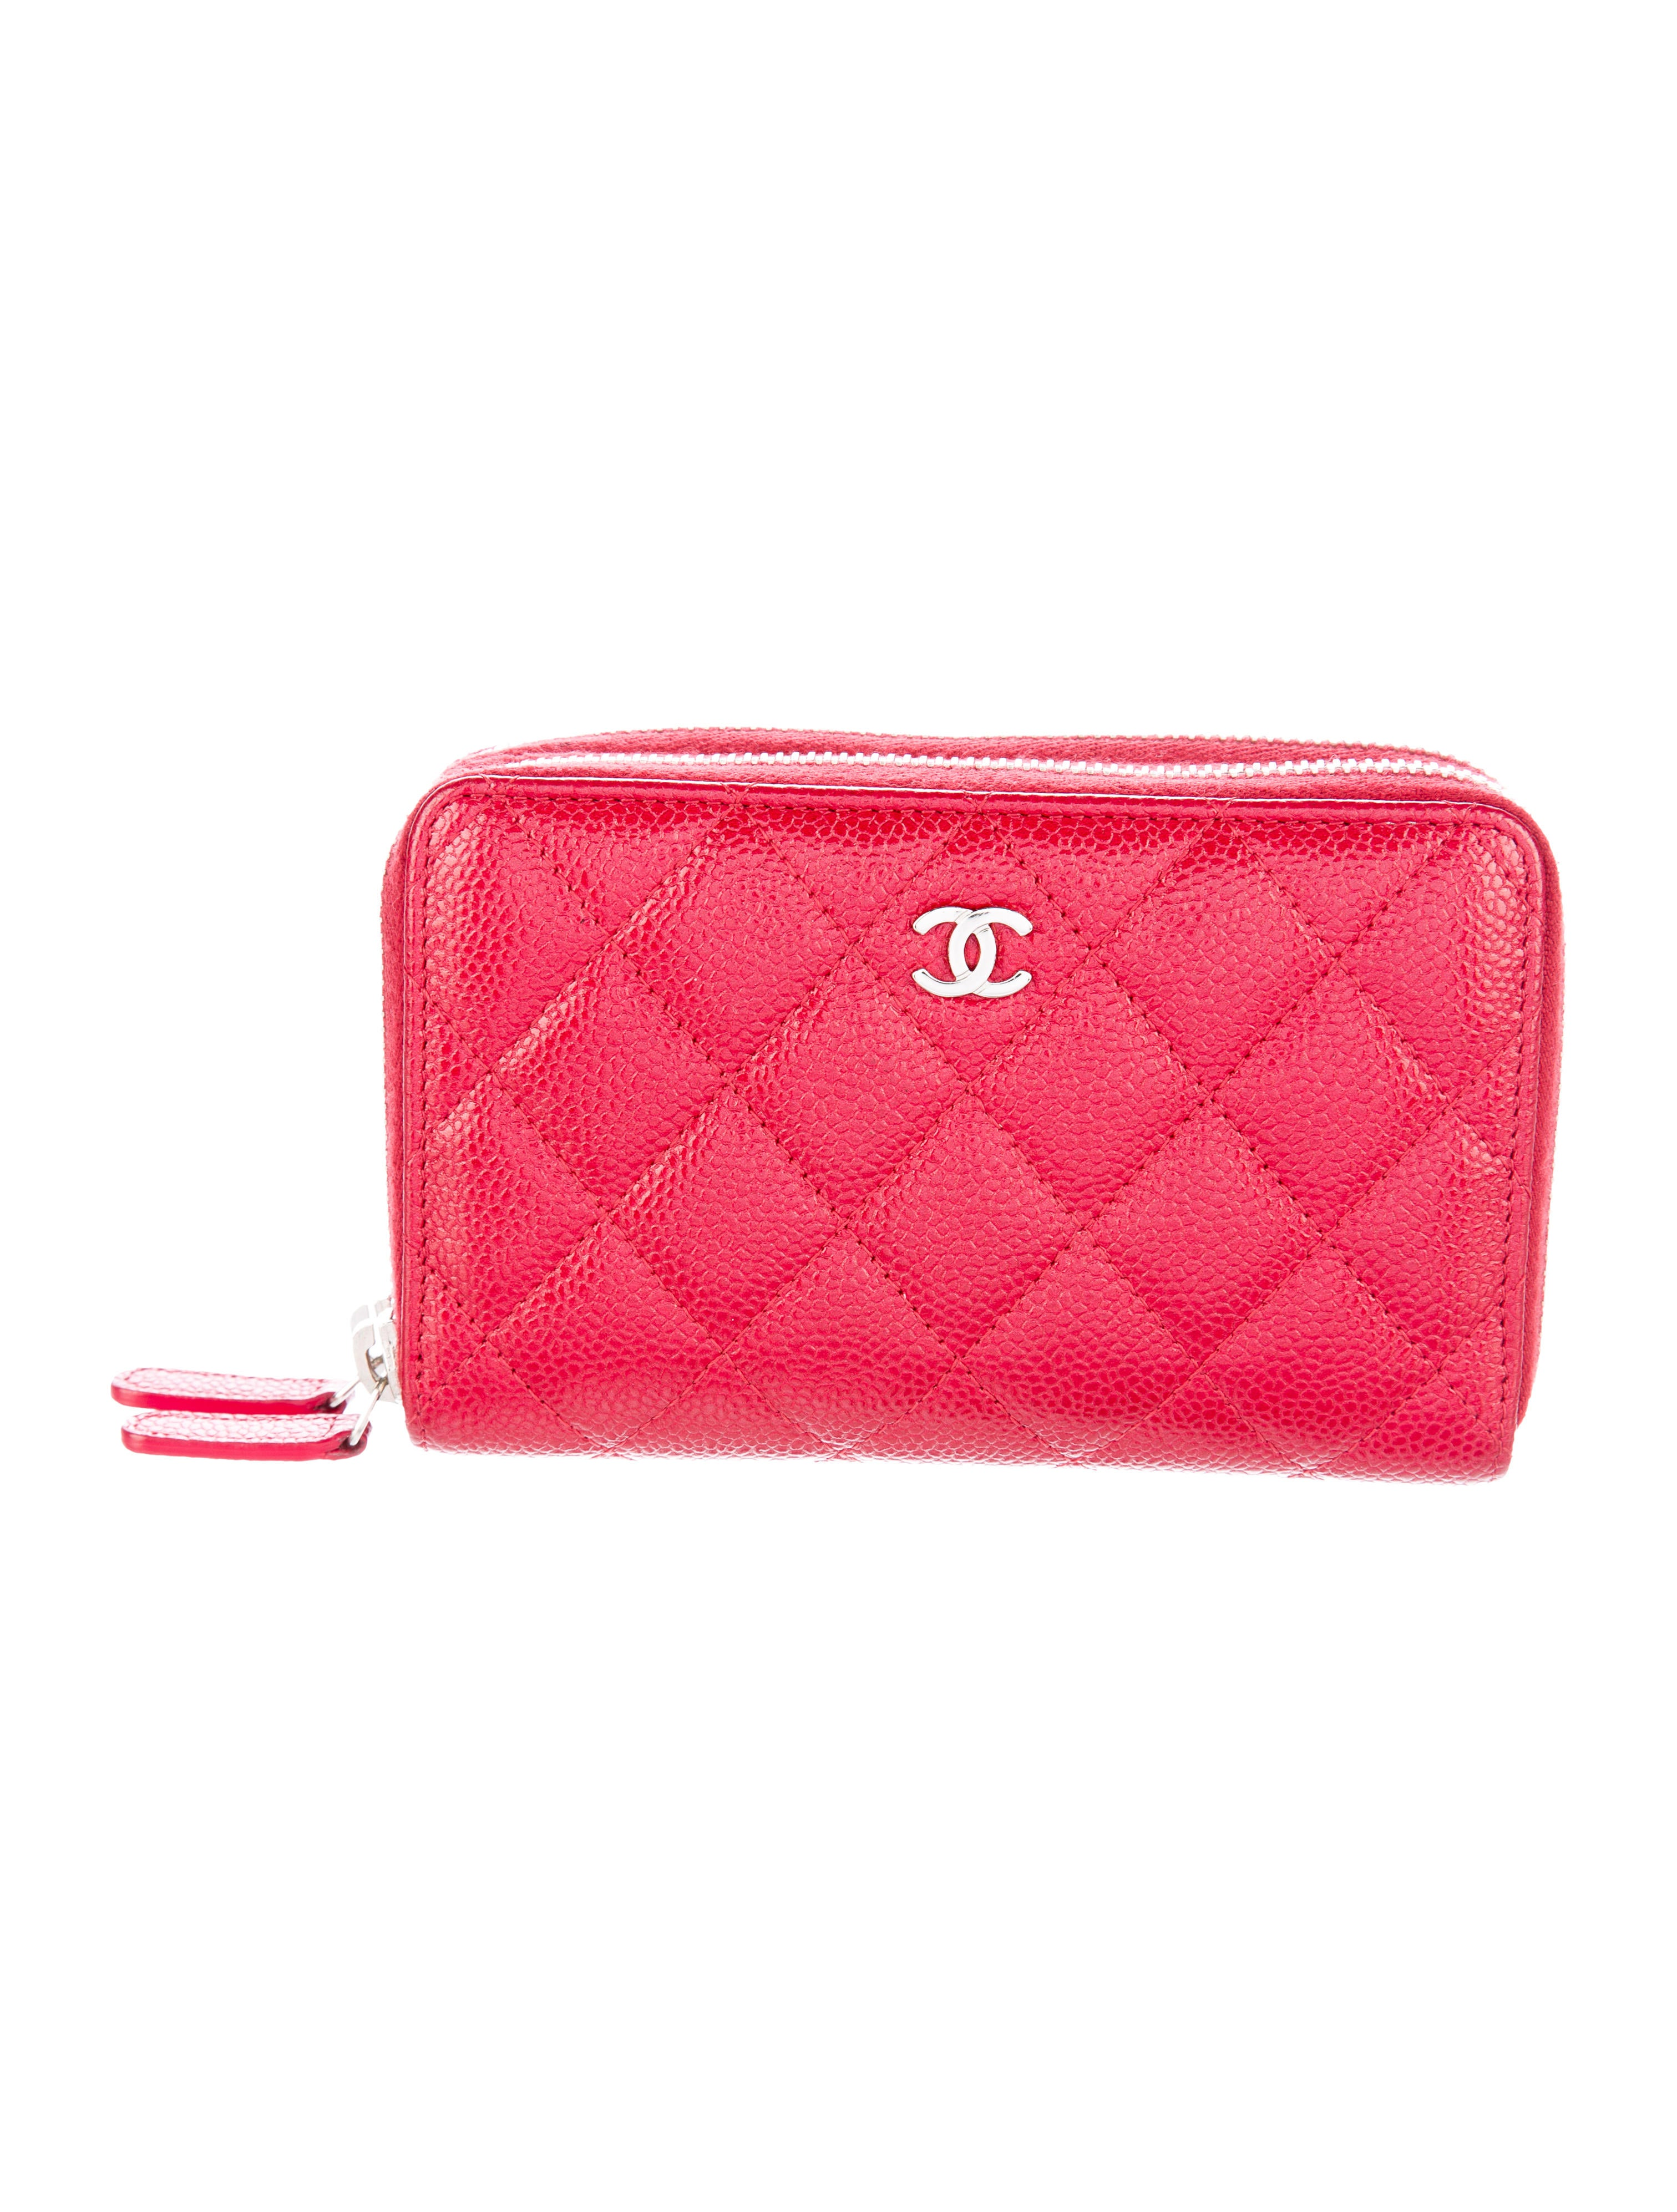 Chanel Cruise 2015 Caviar Double Zip Large Gusset Wallet ... 542a121259afe